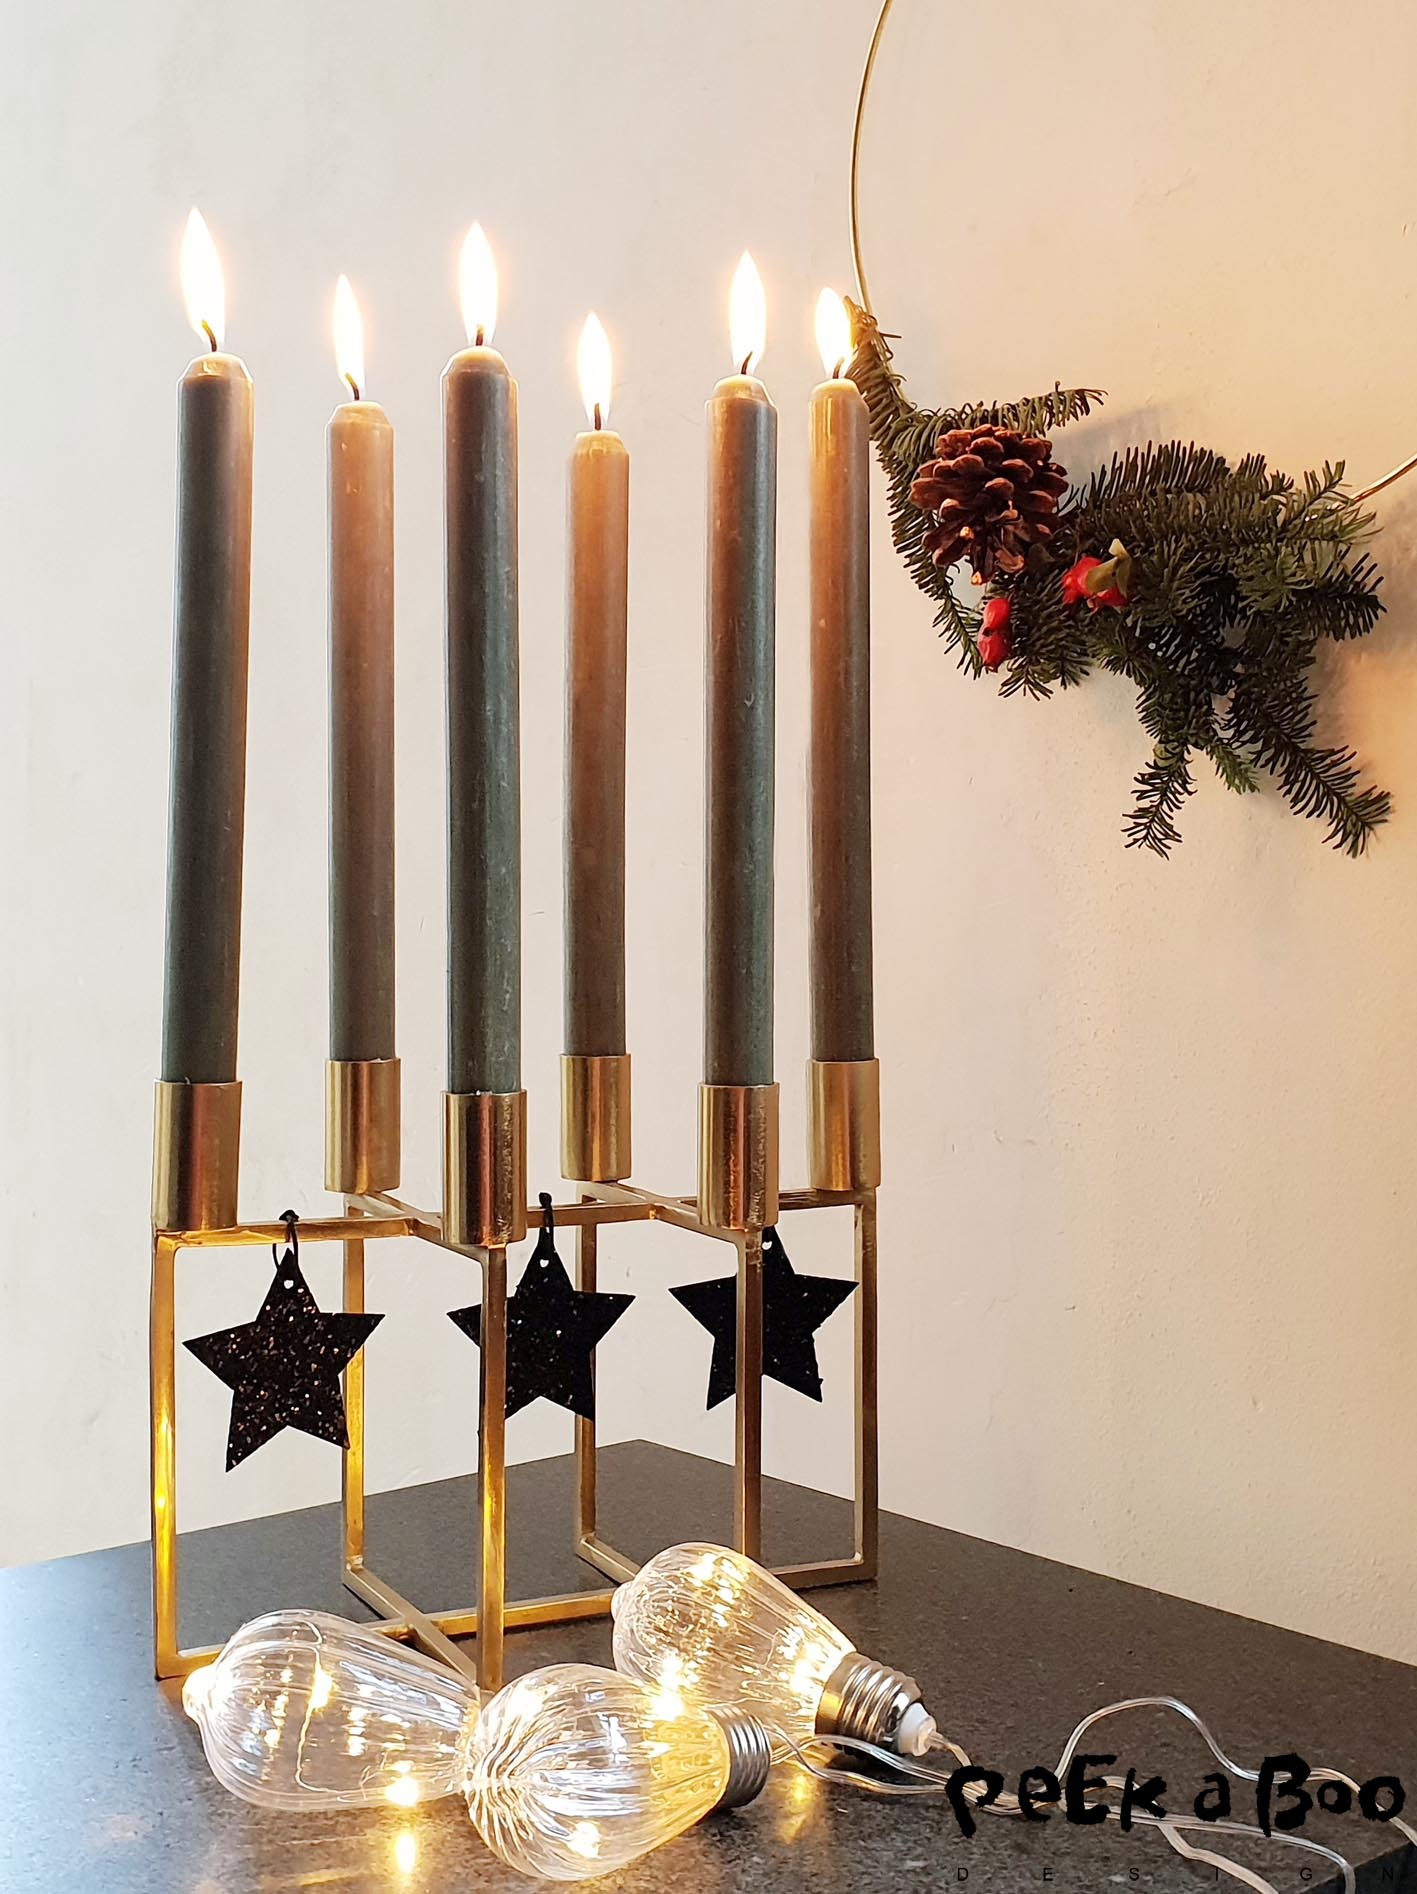 The simpel and elegant styling of a brass candleholder with some black glittering starts makes a modern christmas look.